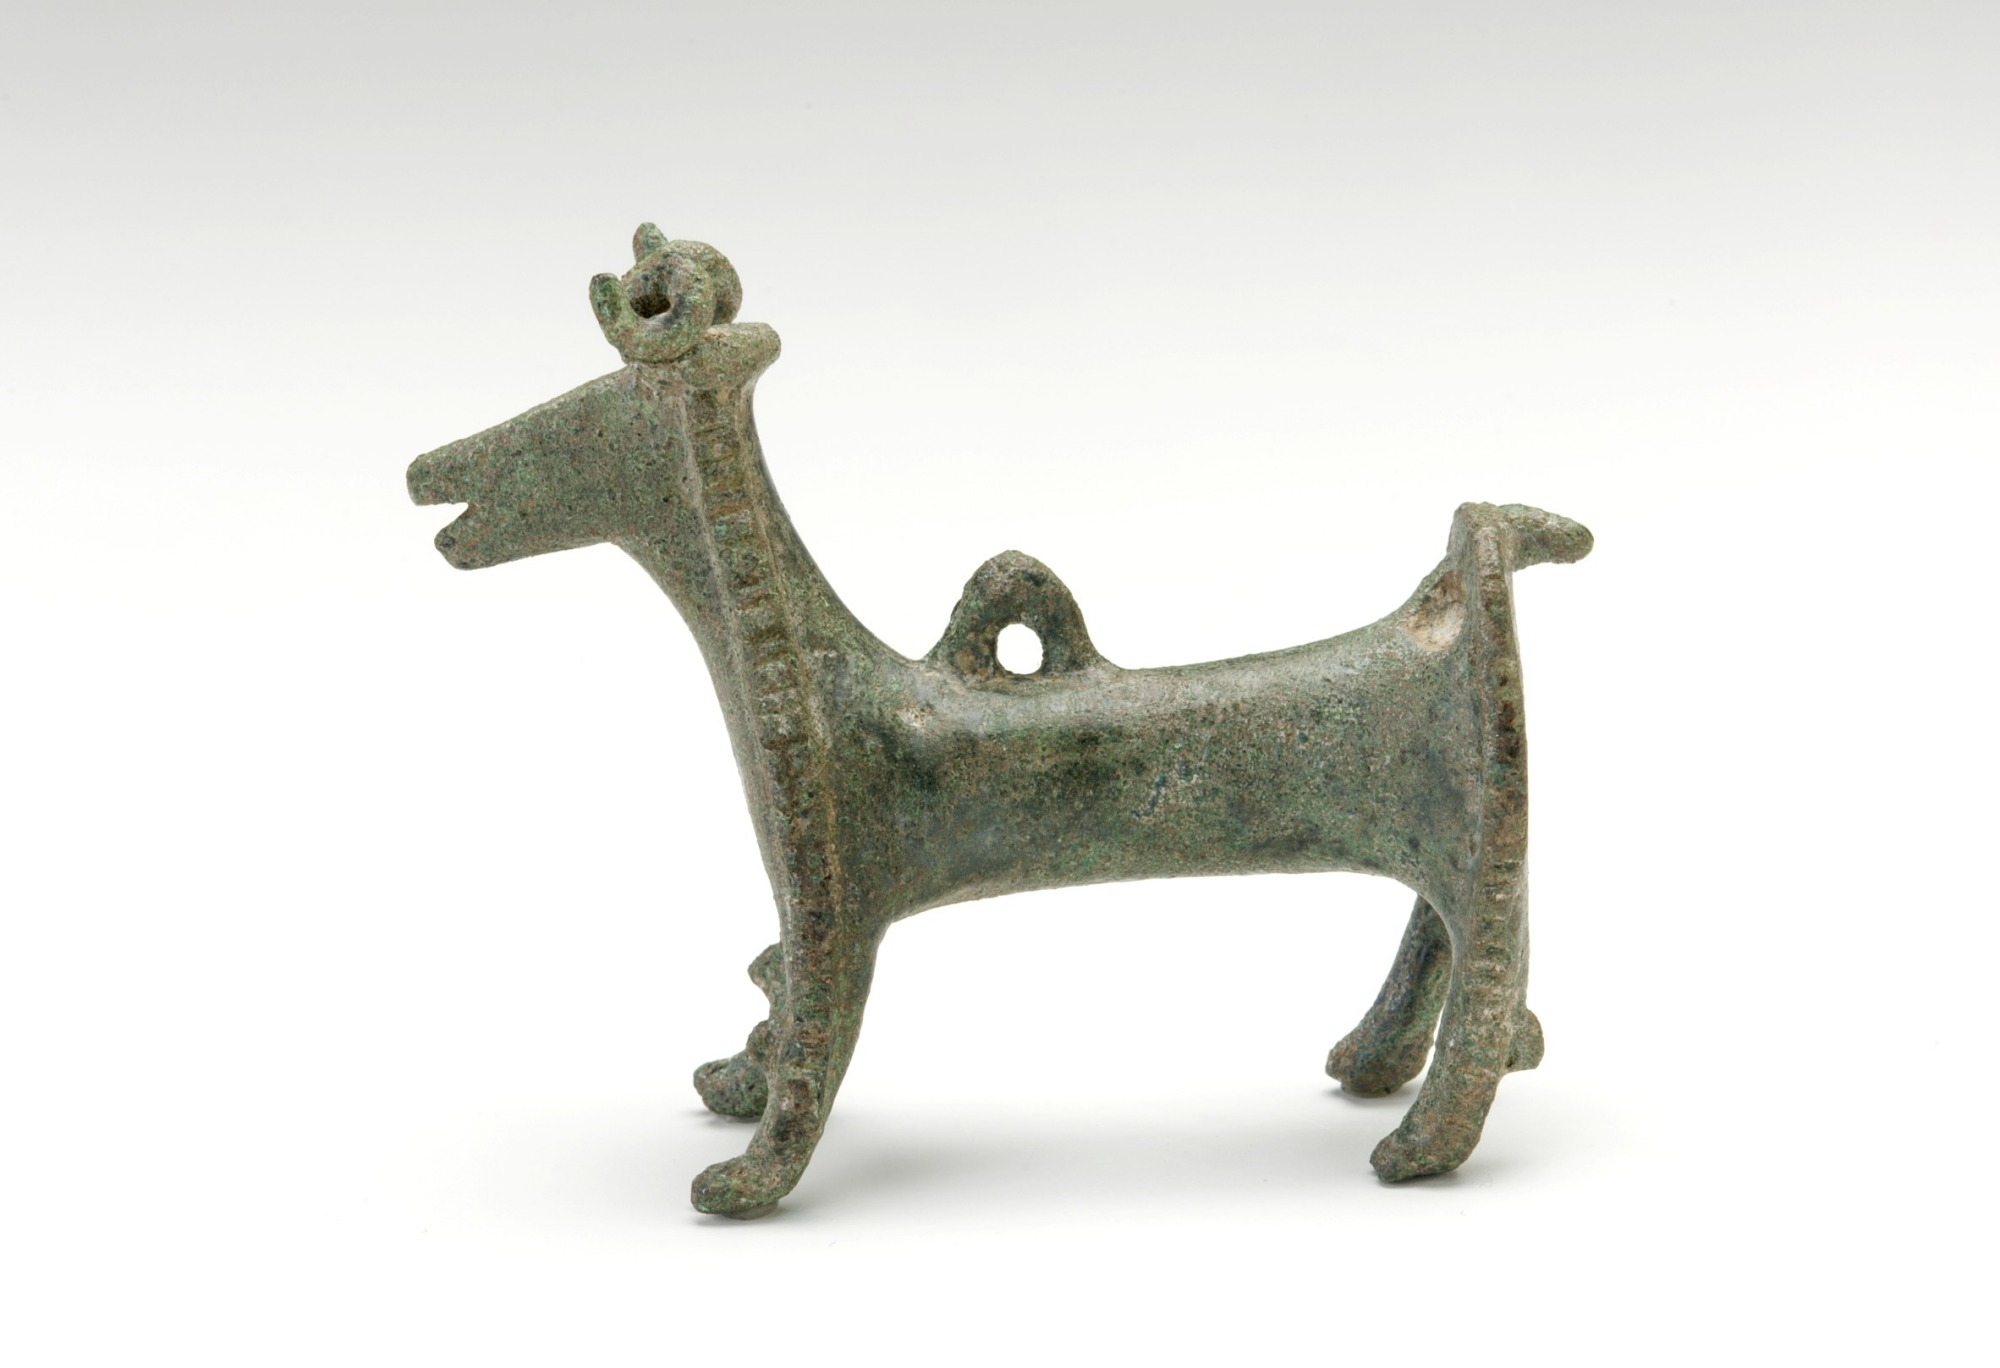 : Pendant in the shape of a goat